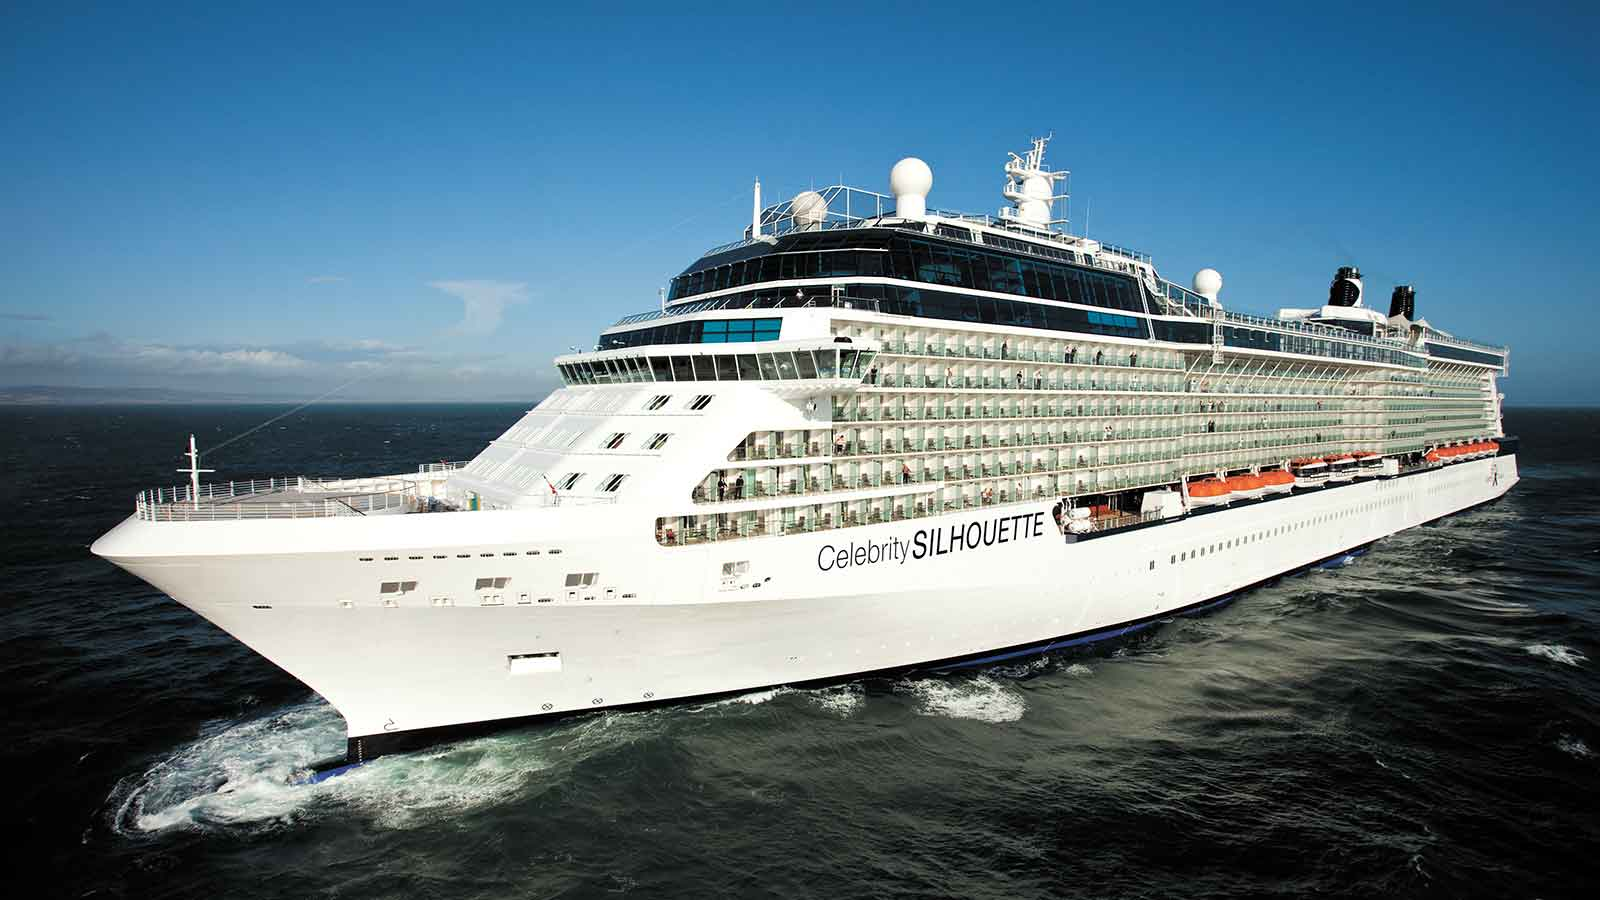 Celebrity cruises birthday packagge